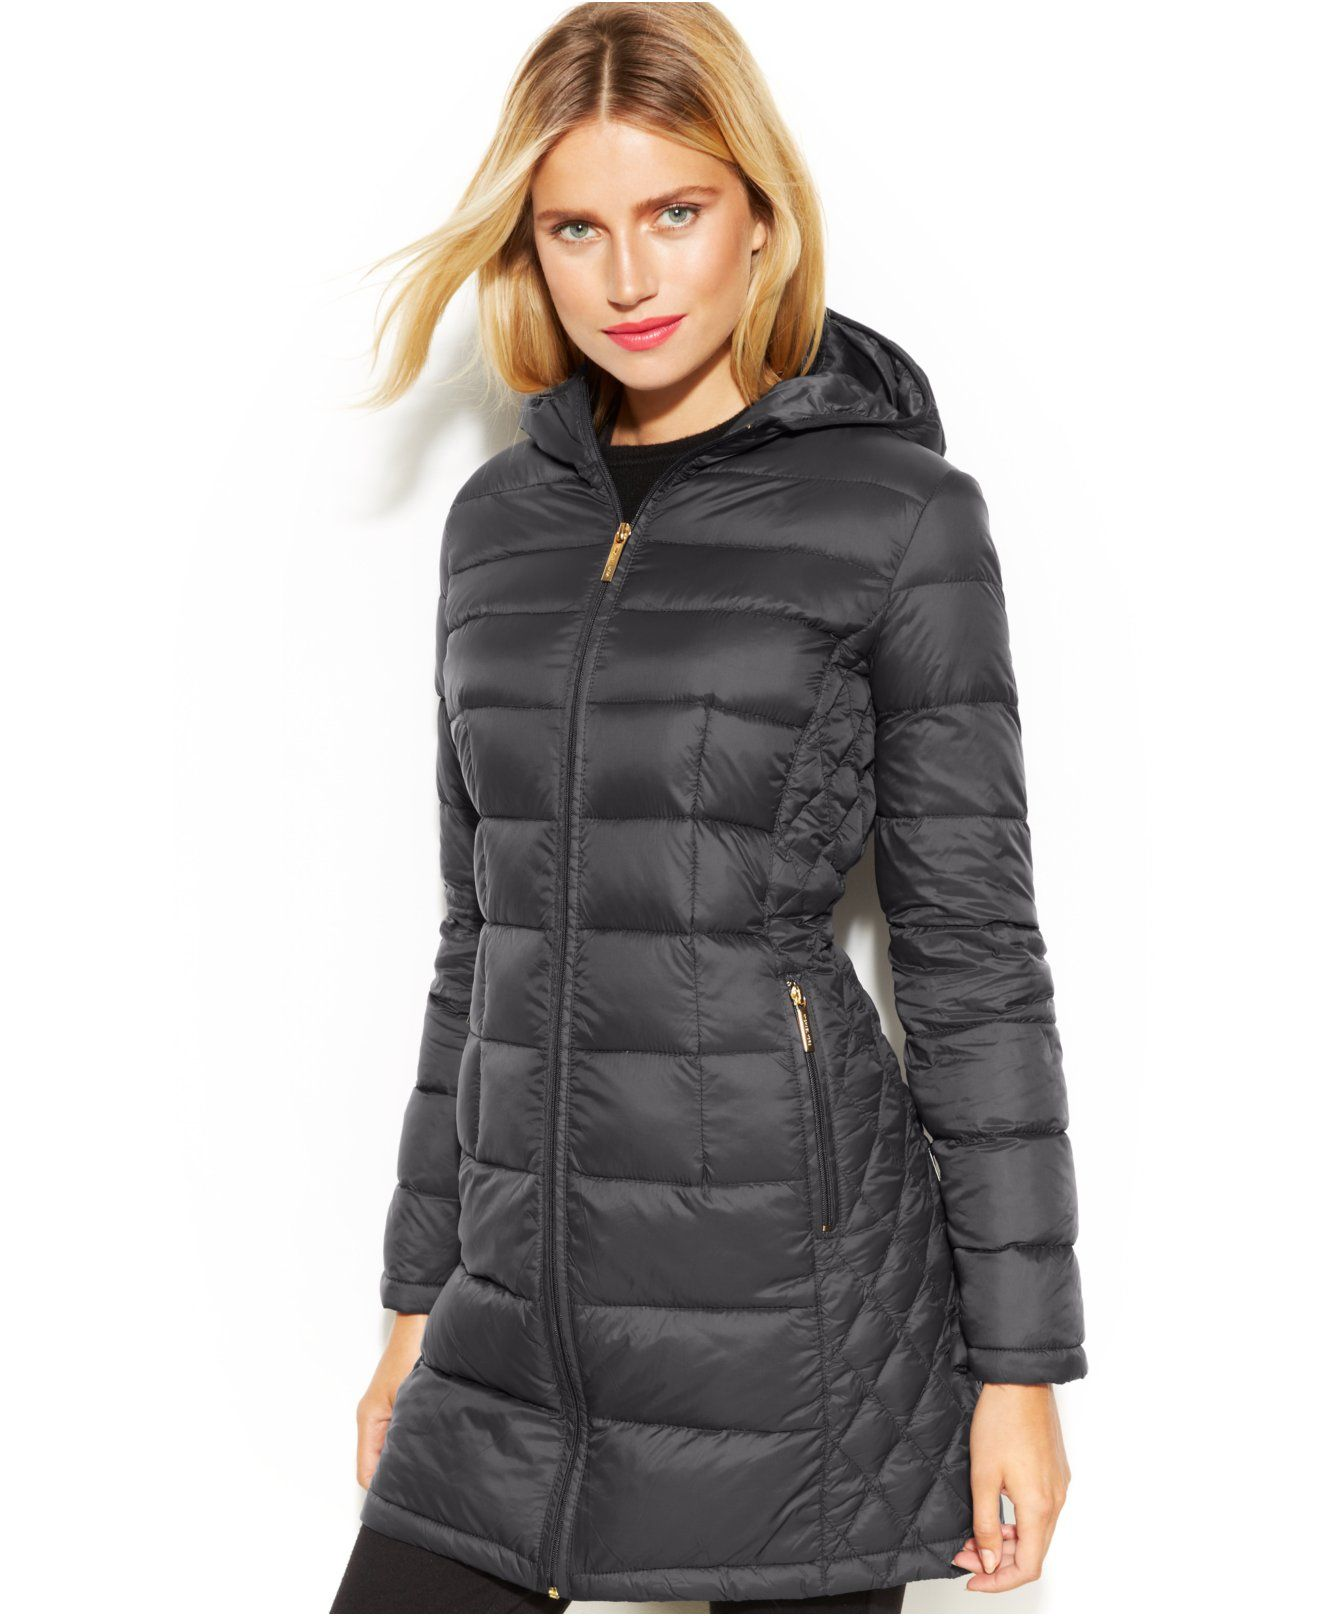 e4c77d51d574 MICHAEL Michael Kors Petite Quilted Down Packable Puffer Coat - Coats -  Women - Macy s